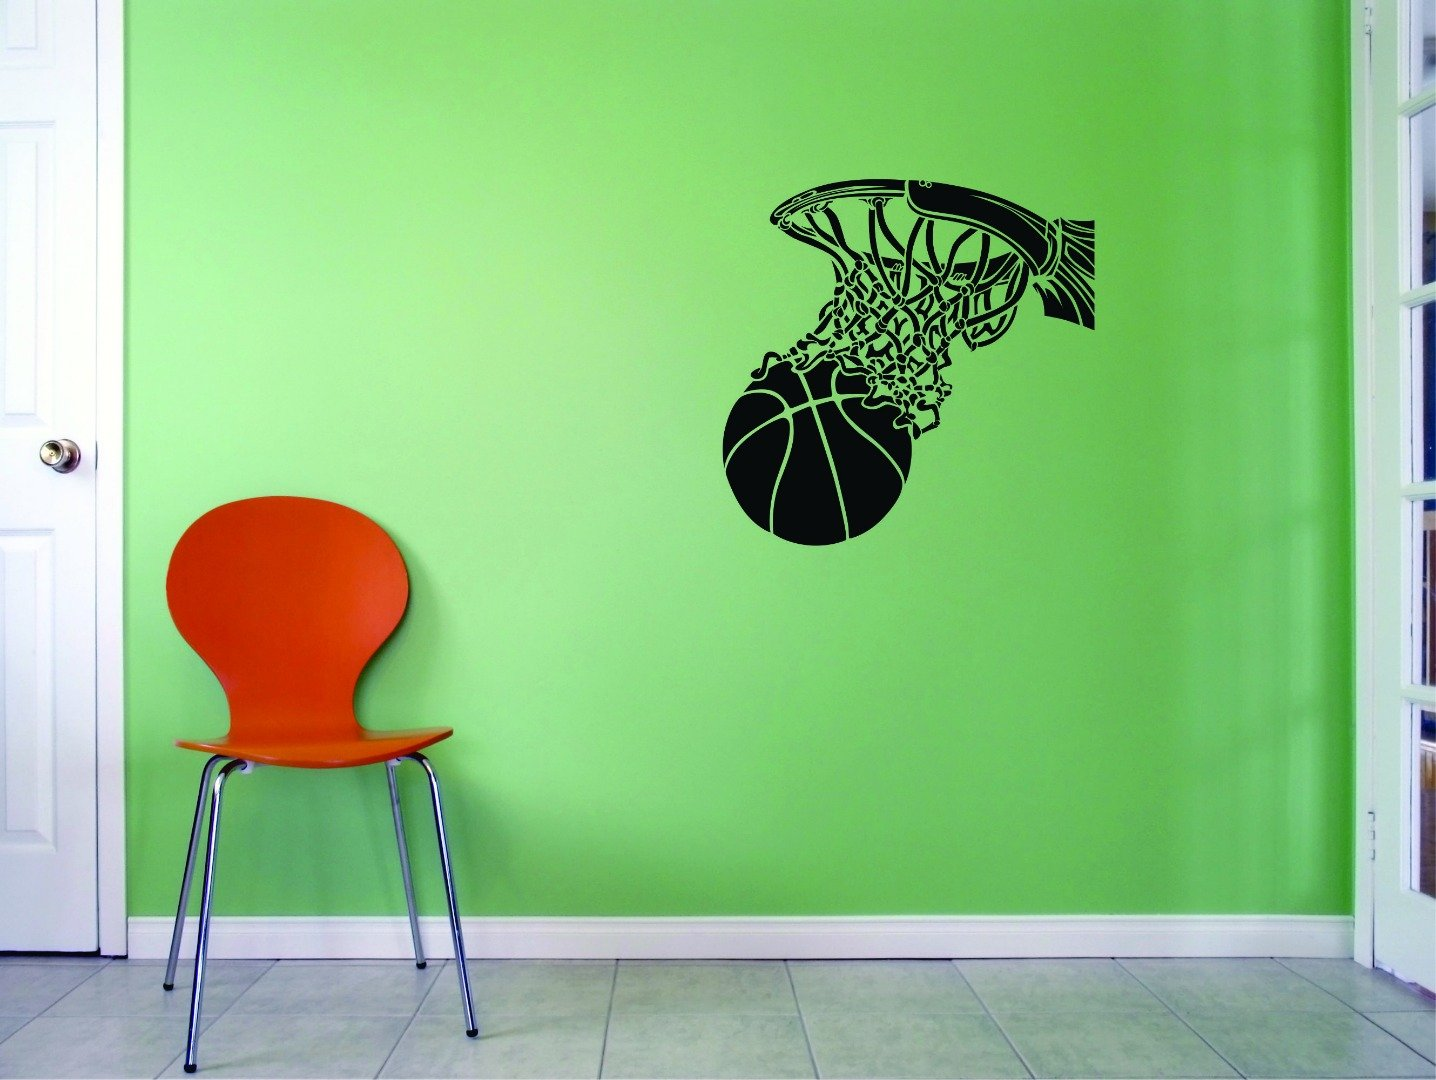 Exceptional Amazon.com: DISCOUNTED Decal   Wall Sticker : Basketball Hoop Sports Home  Decor Picture Art Size : 10 Inches X 20 Inches   22 Colors Available: Home  U0026 ...